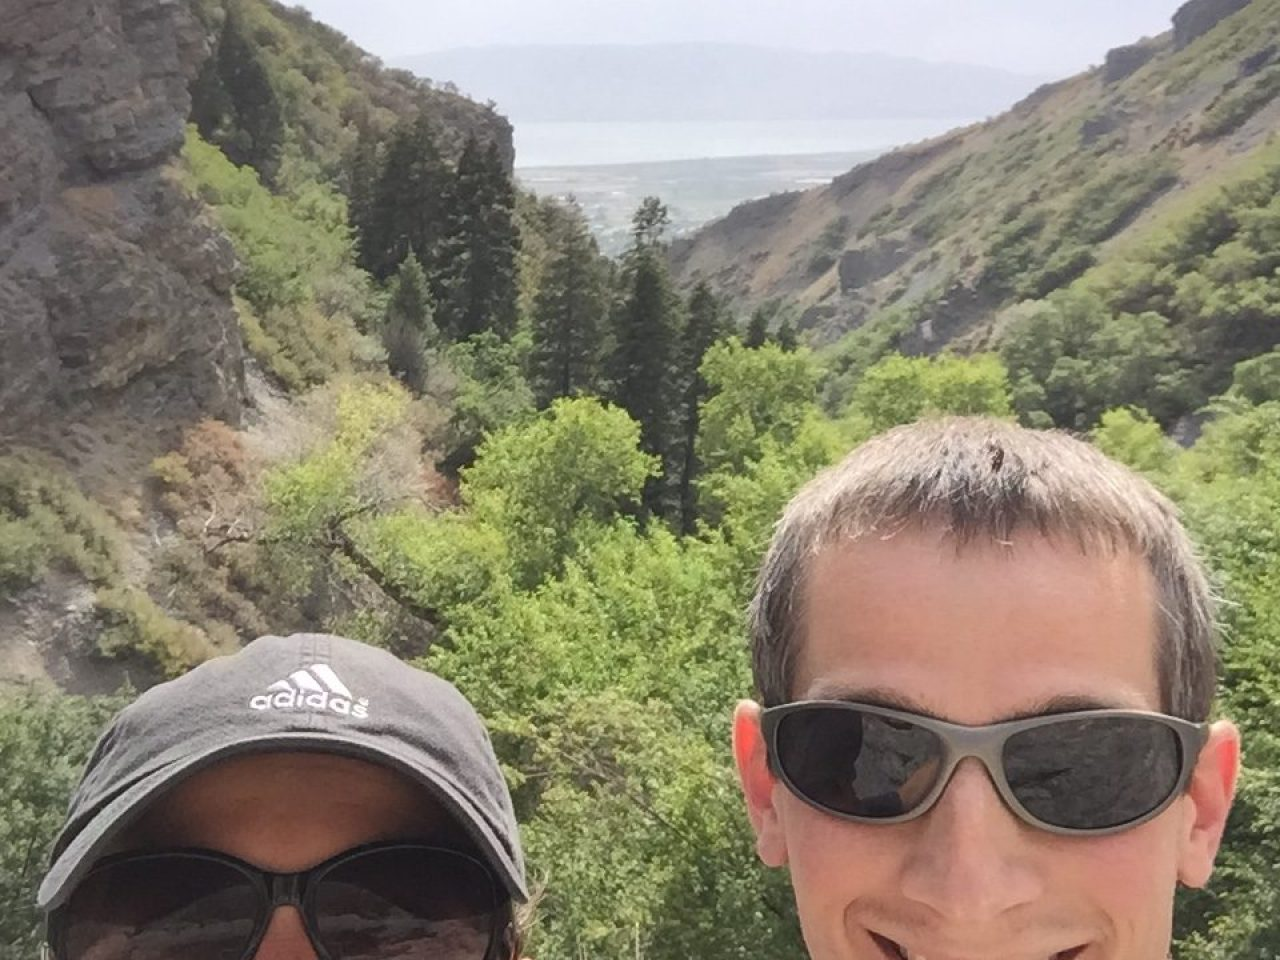 Our Hiking Beginners! Our First Hike in Utah August 2016First Hike in Utah August 2016